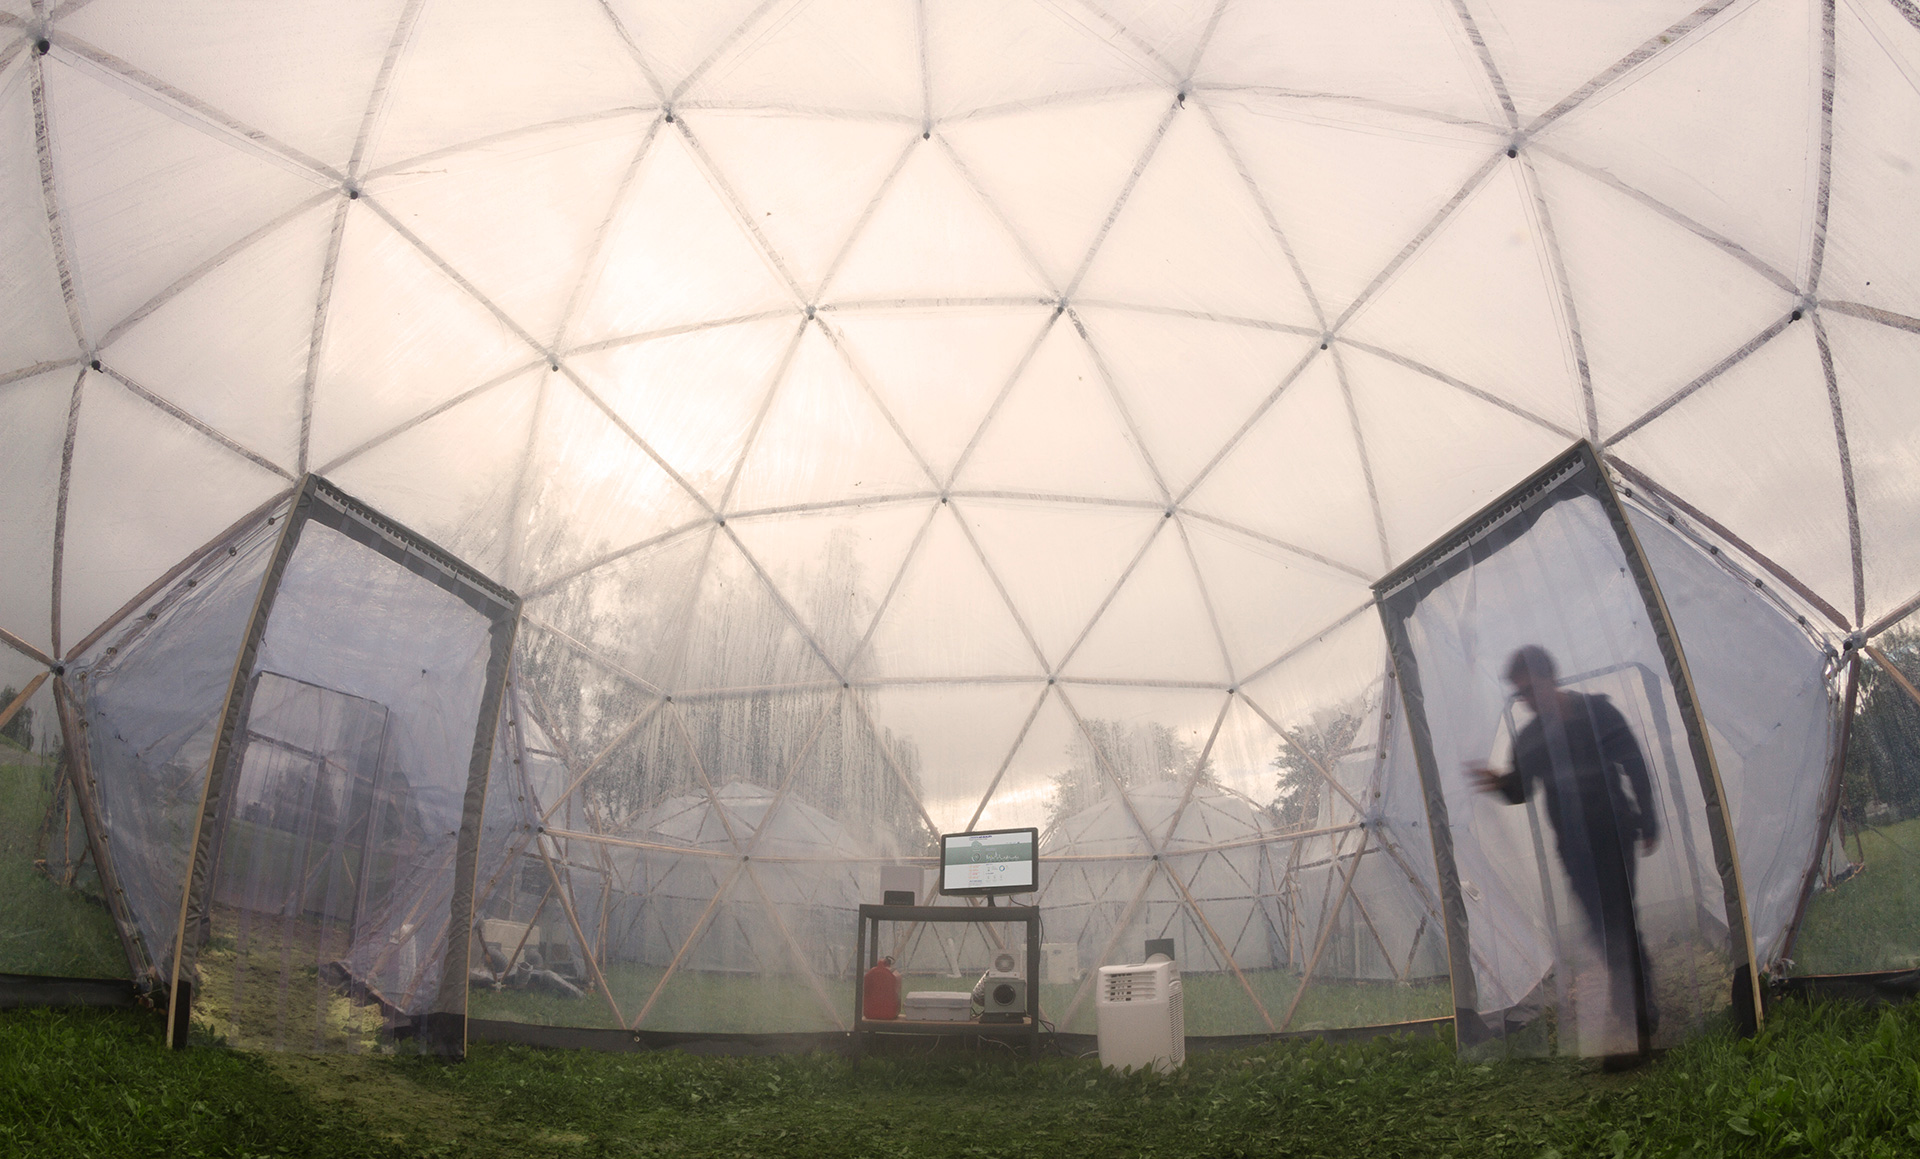 Inside the Pollution Pods visitors felt uneasy and were short of breath as each pod imitated the air quality of five international cities | Pollution Pods | Michael Pinsky | STIRworld